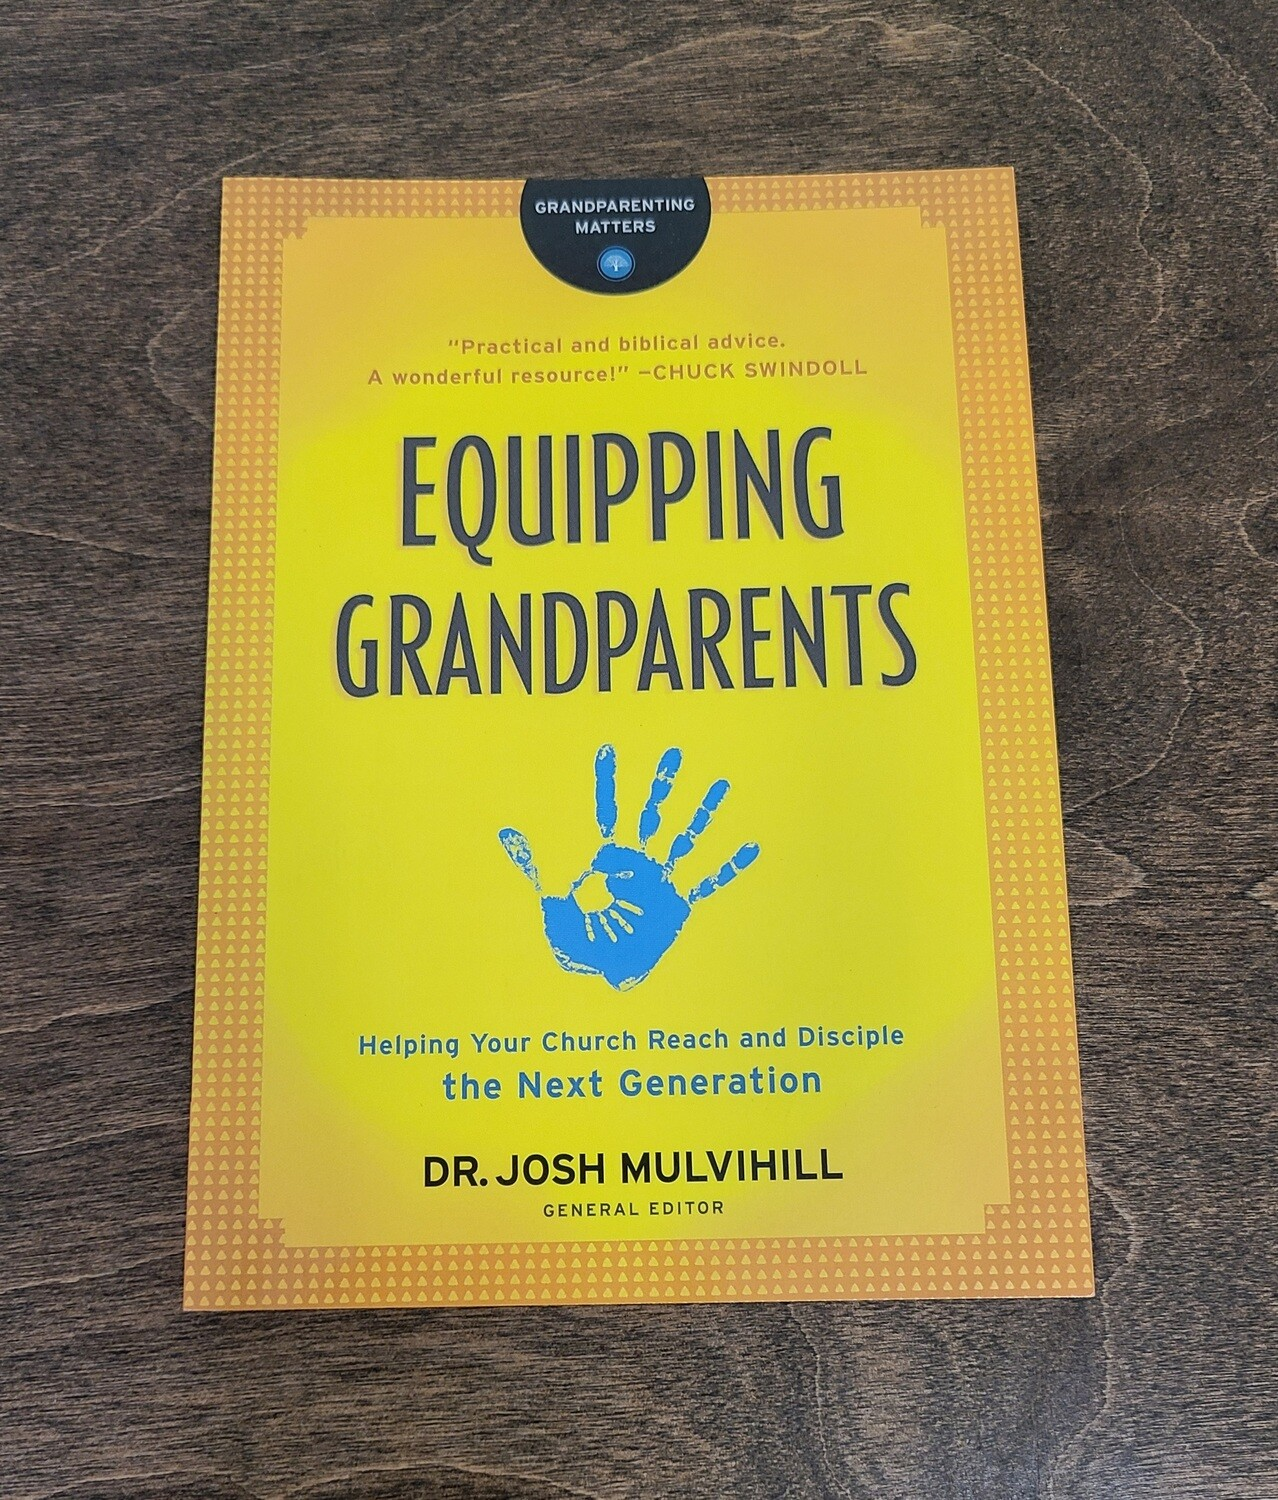 Equipping Grandparents by Dr. Josh Mulvihill